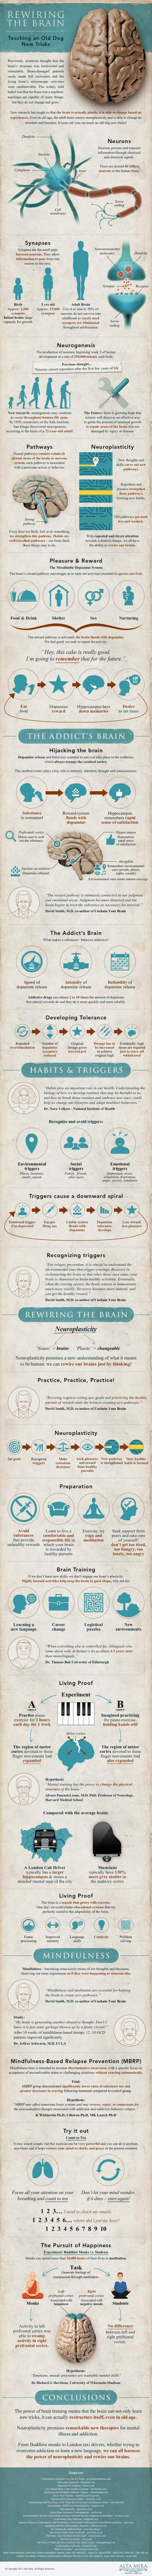 Rewiring_the_Brain_Infographic